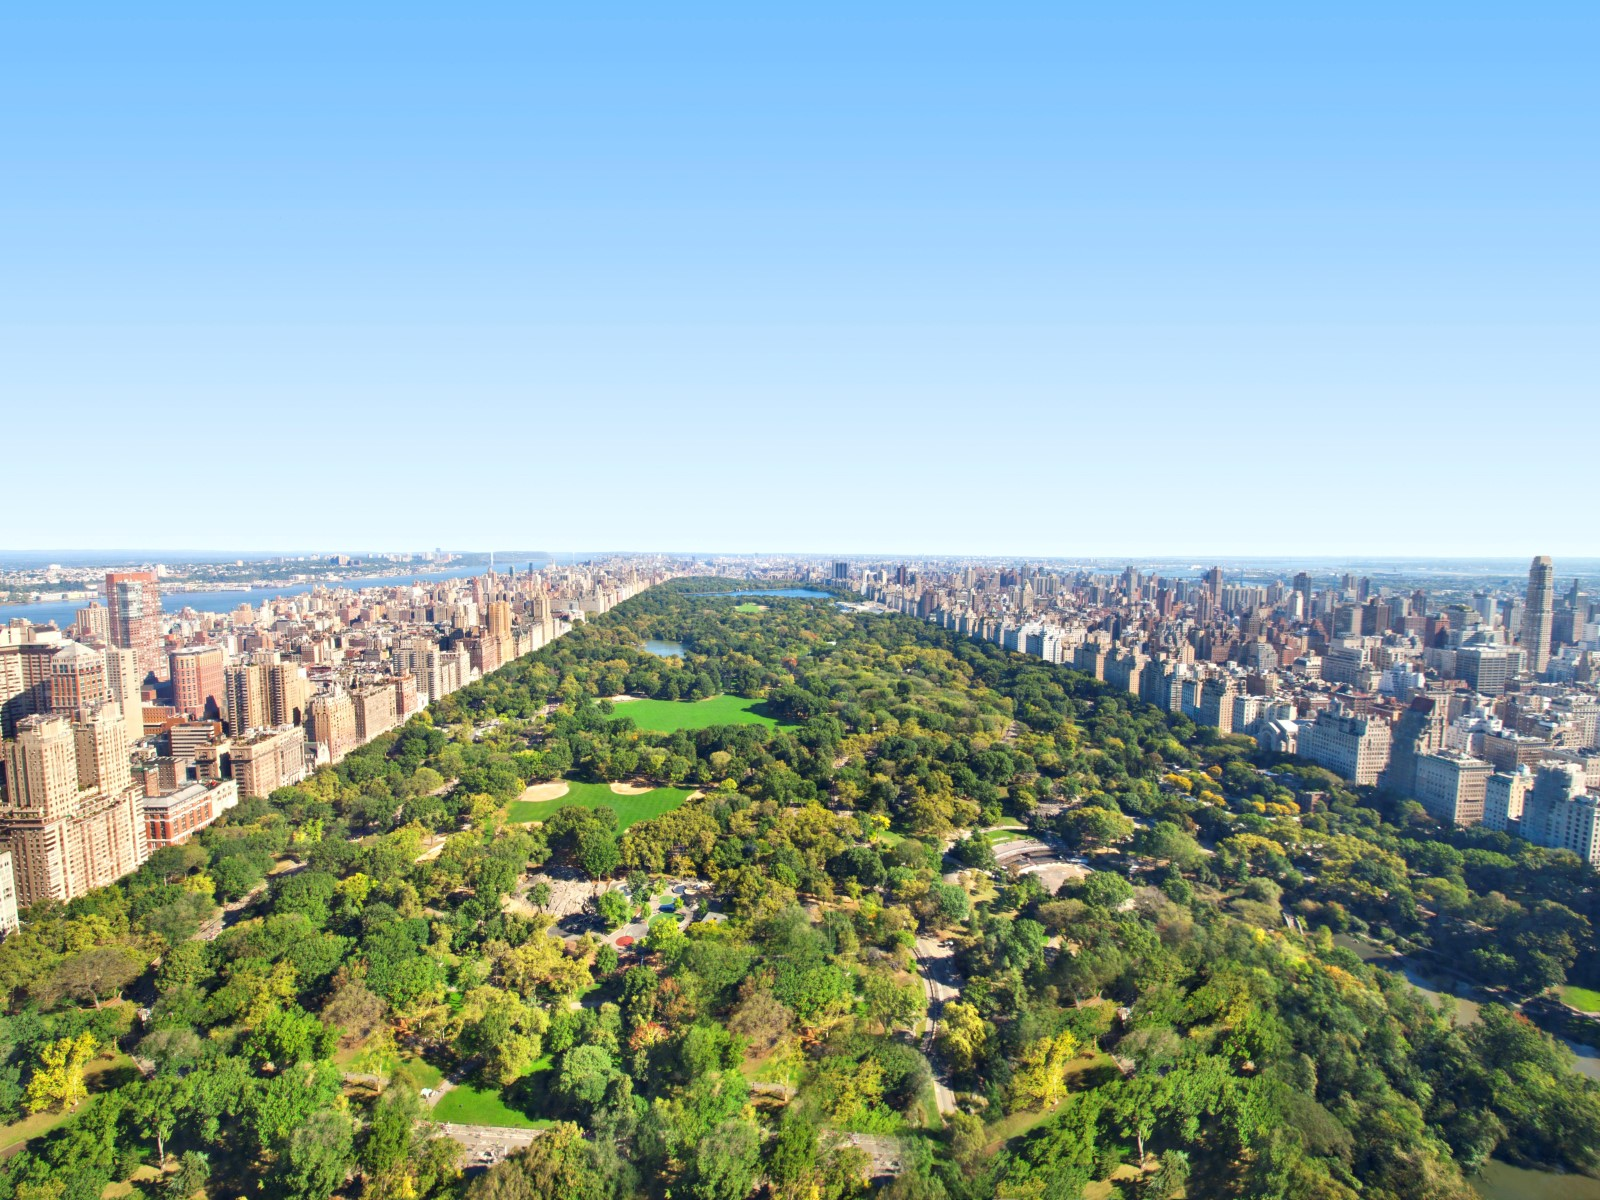 콘도미니엄 용 매매 에 57 Linear Ft Overlooking Central Park 157 West 57th Street Apt 62a New York, 뉴욕 10023 미국